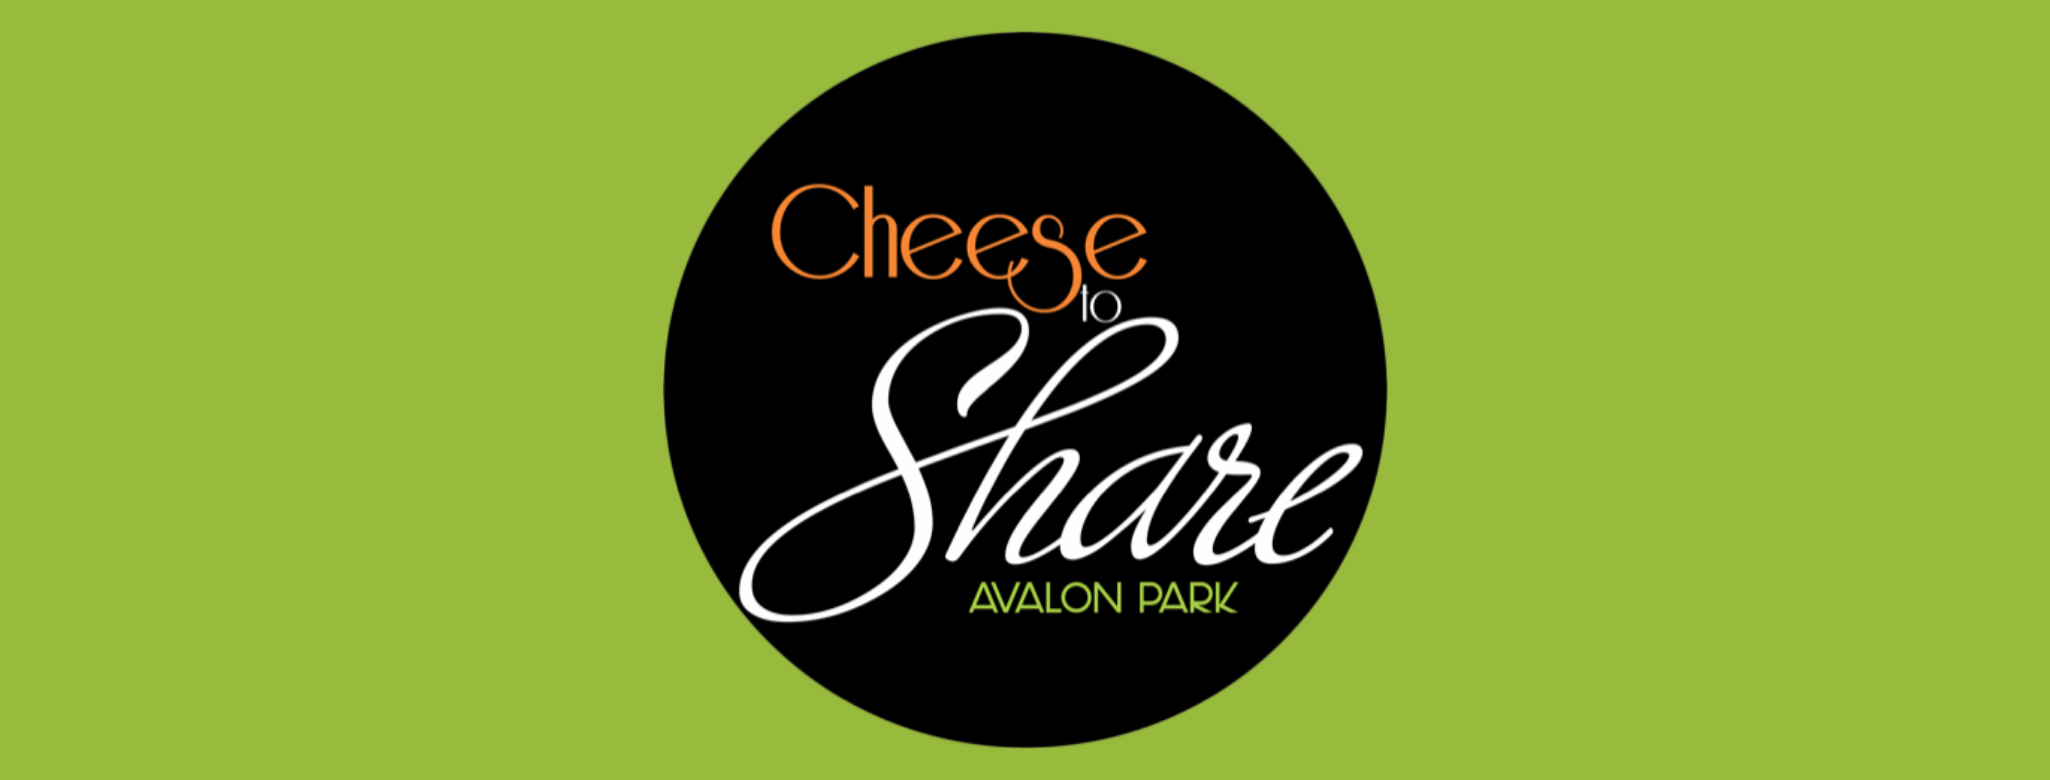 Cheese To Share Feature